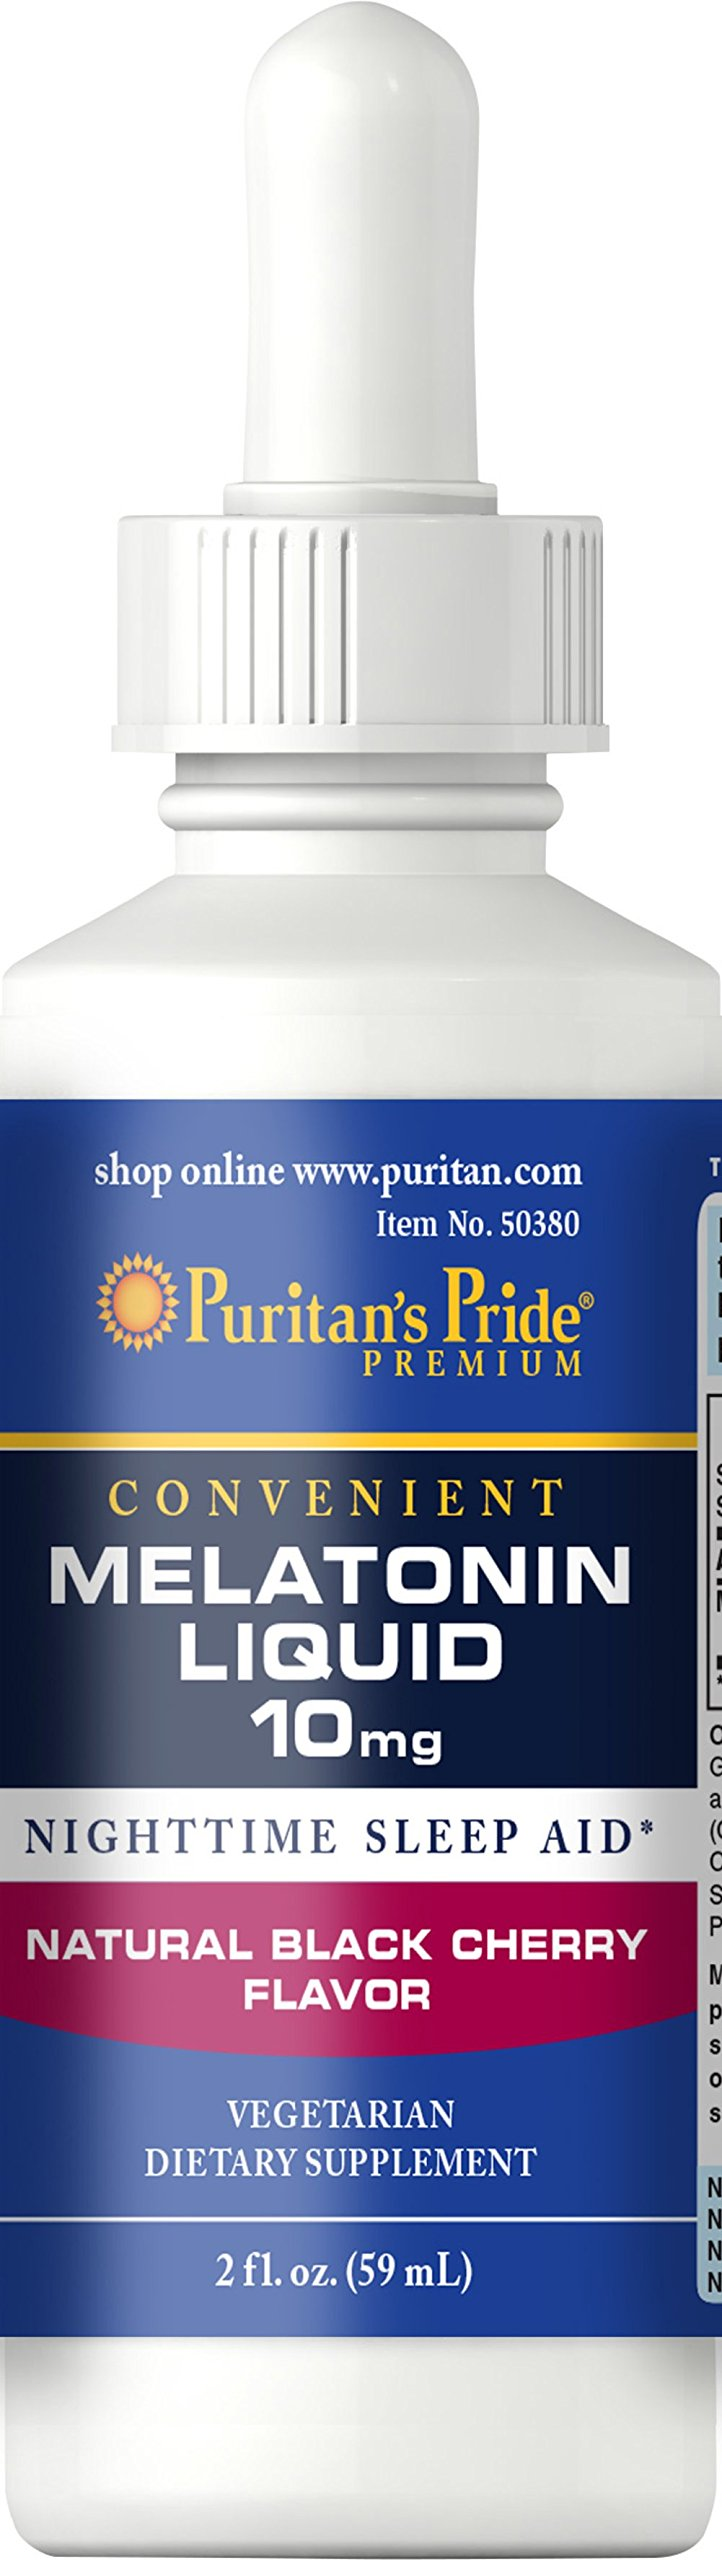 Puritans Pride Melatonin Black Cherry Liquid 10 mg-2 oz Liquid